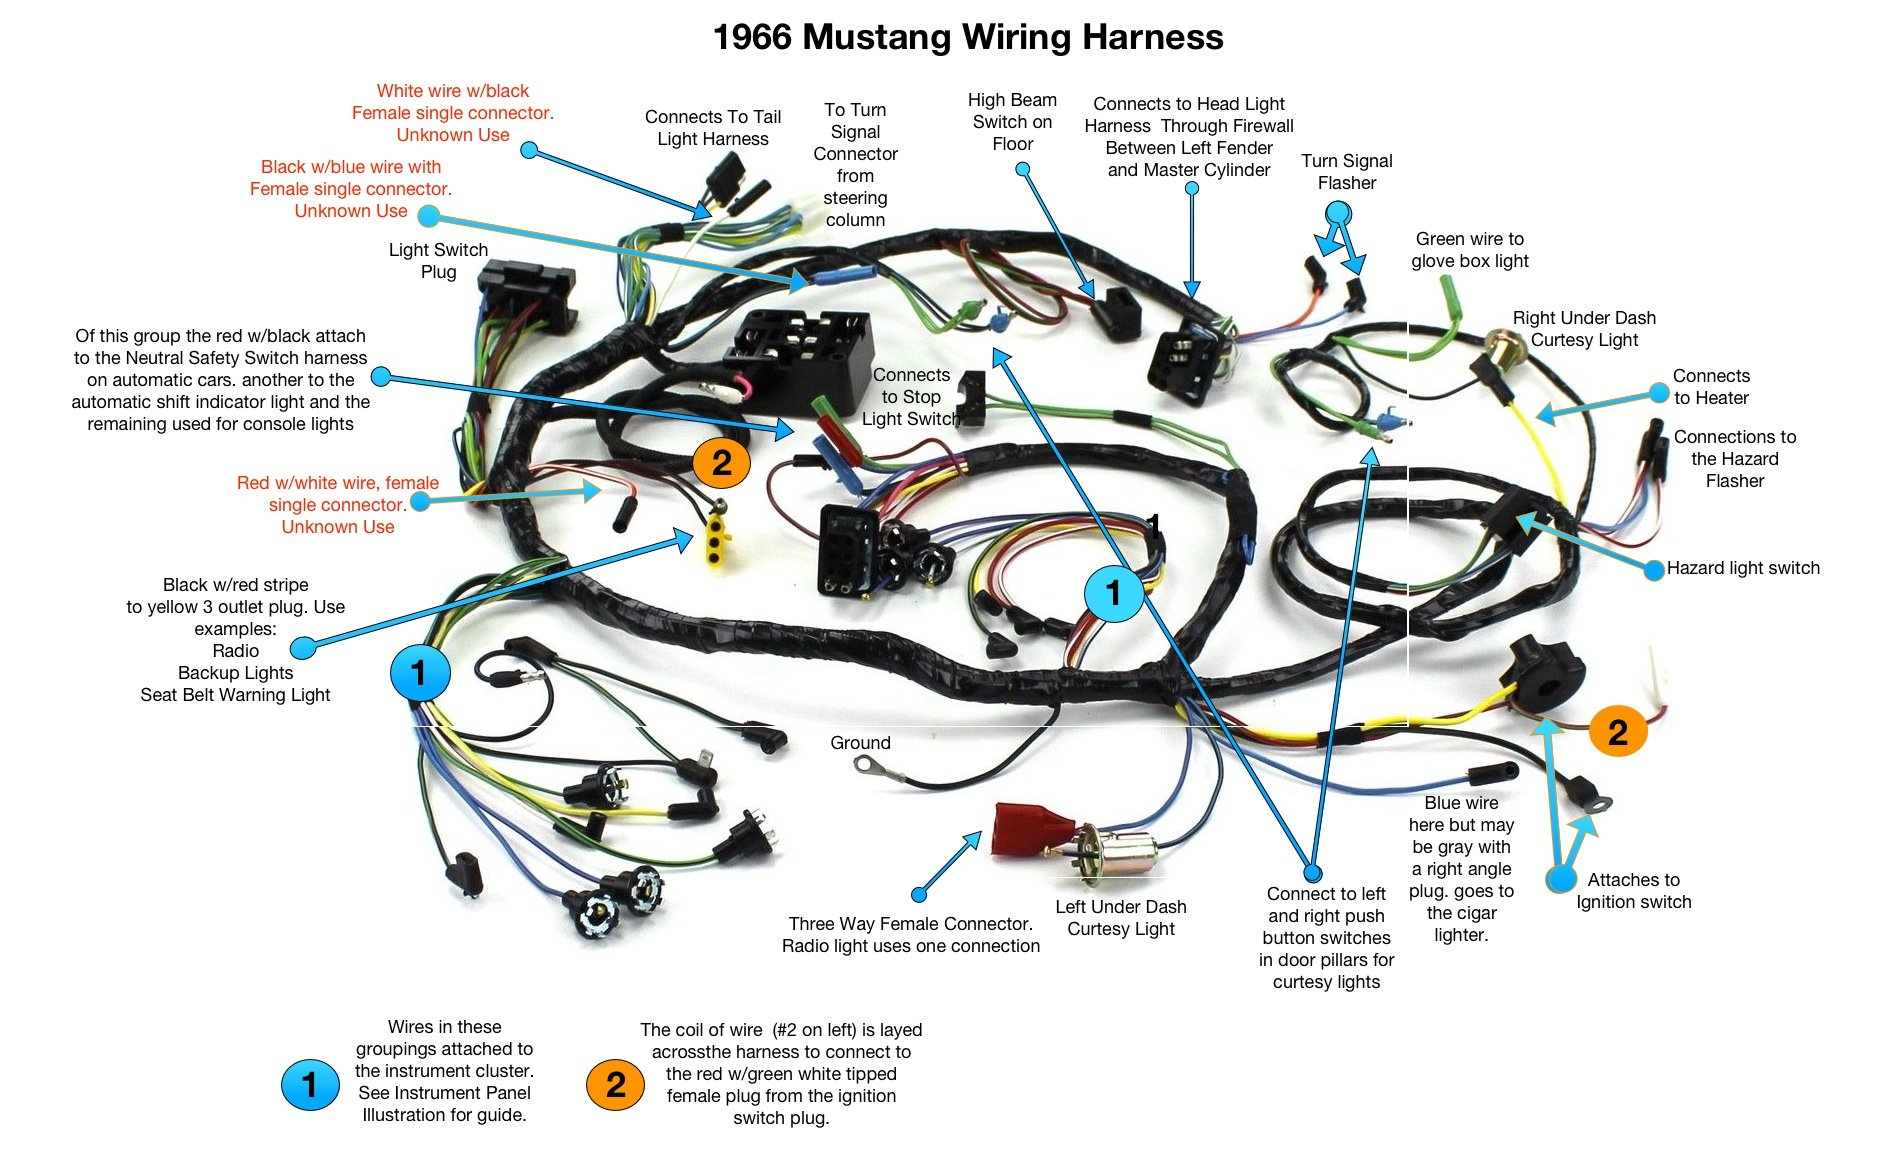 D Wiring Harness Diagram Mustang Wiring Harness on 2006 Bmw 325i Fuse Diagram For Radio